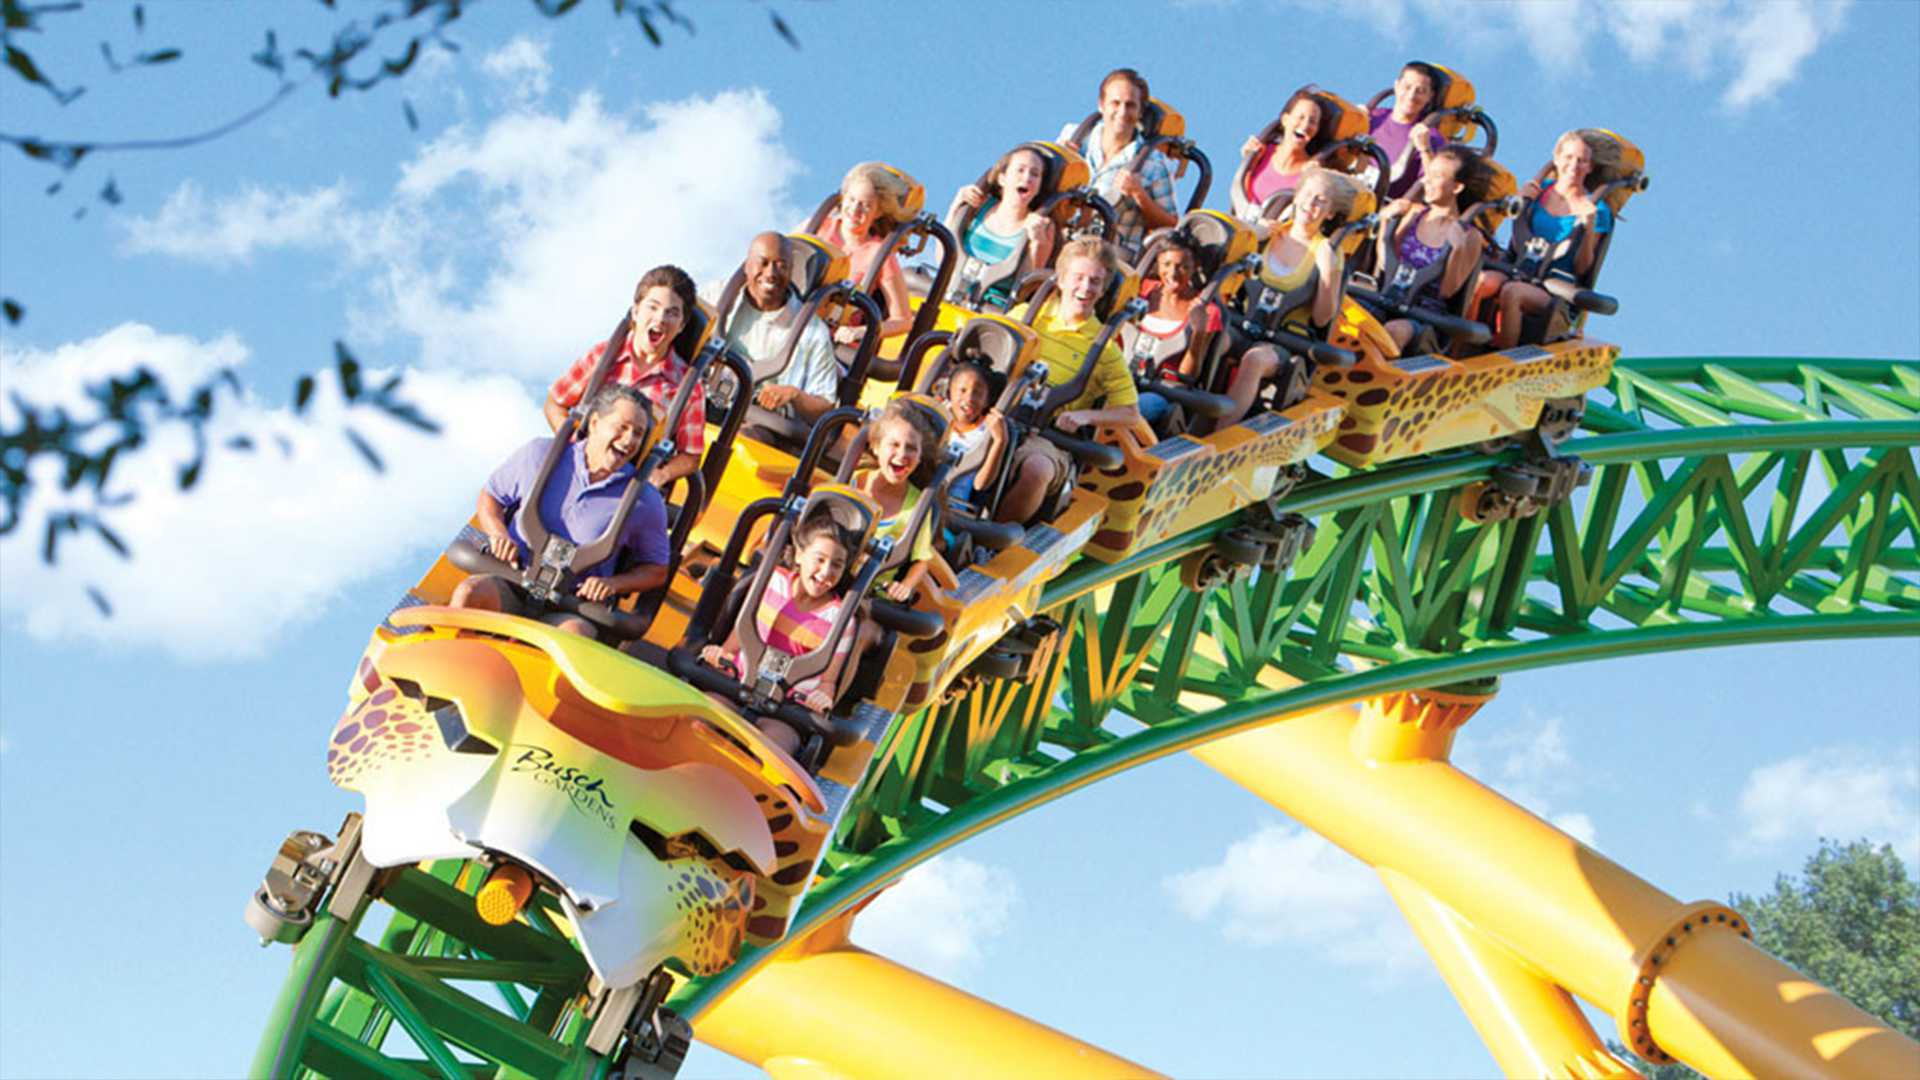 Six Flags Discovery Kingdom is the place to experience thrill rides and attractions. The acre park features a wide range of thrilling experiences, and it is North America's only theme park that combines marine life, wildlife and wild rides.